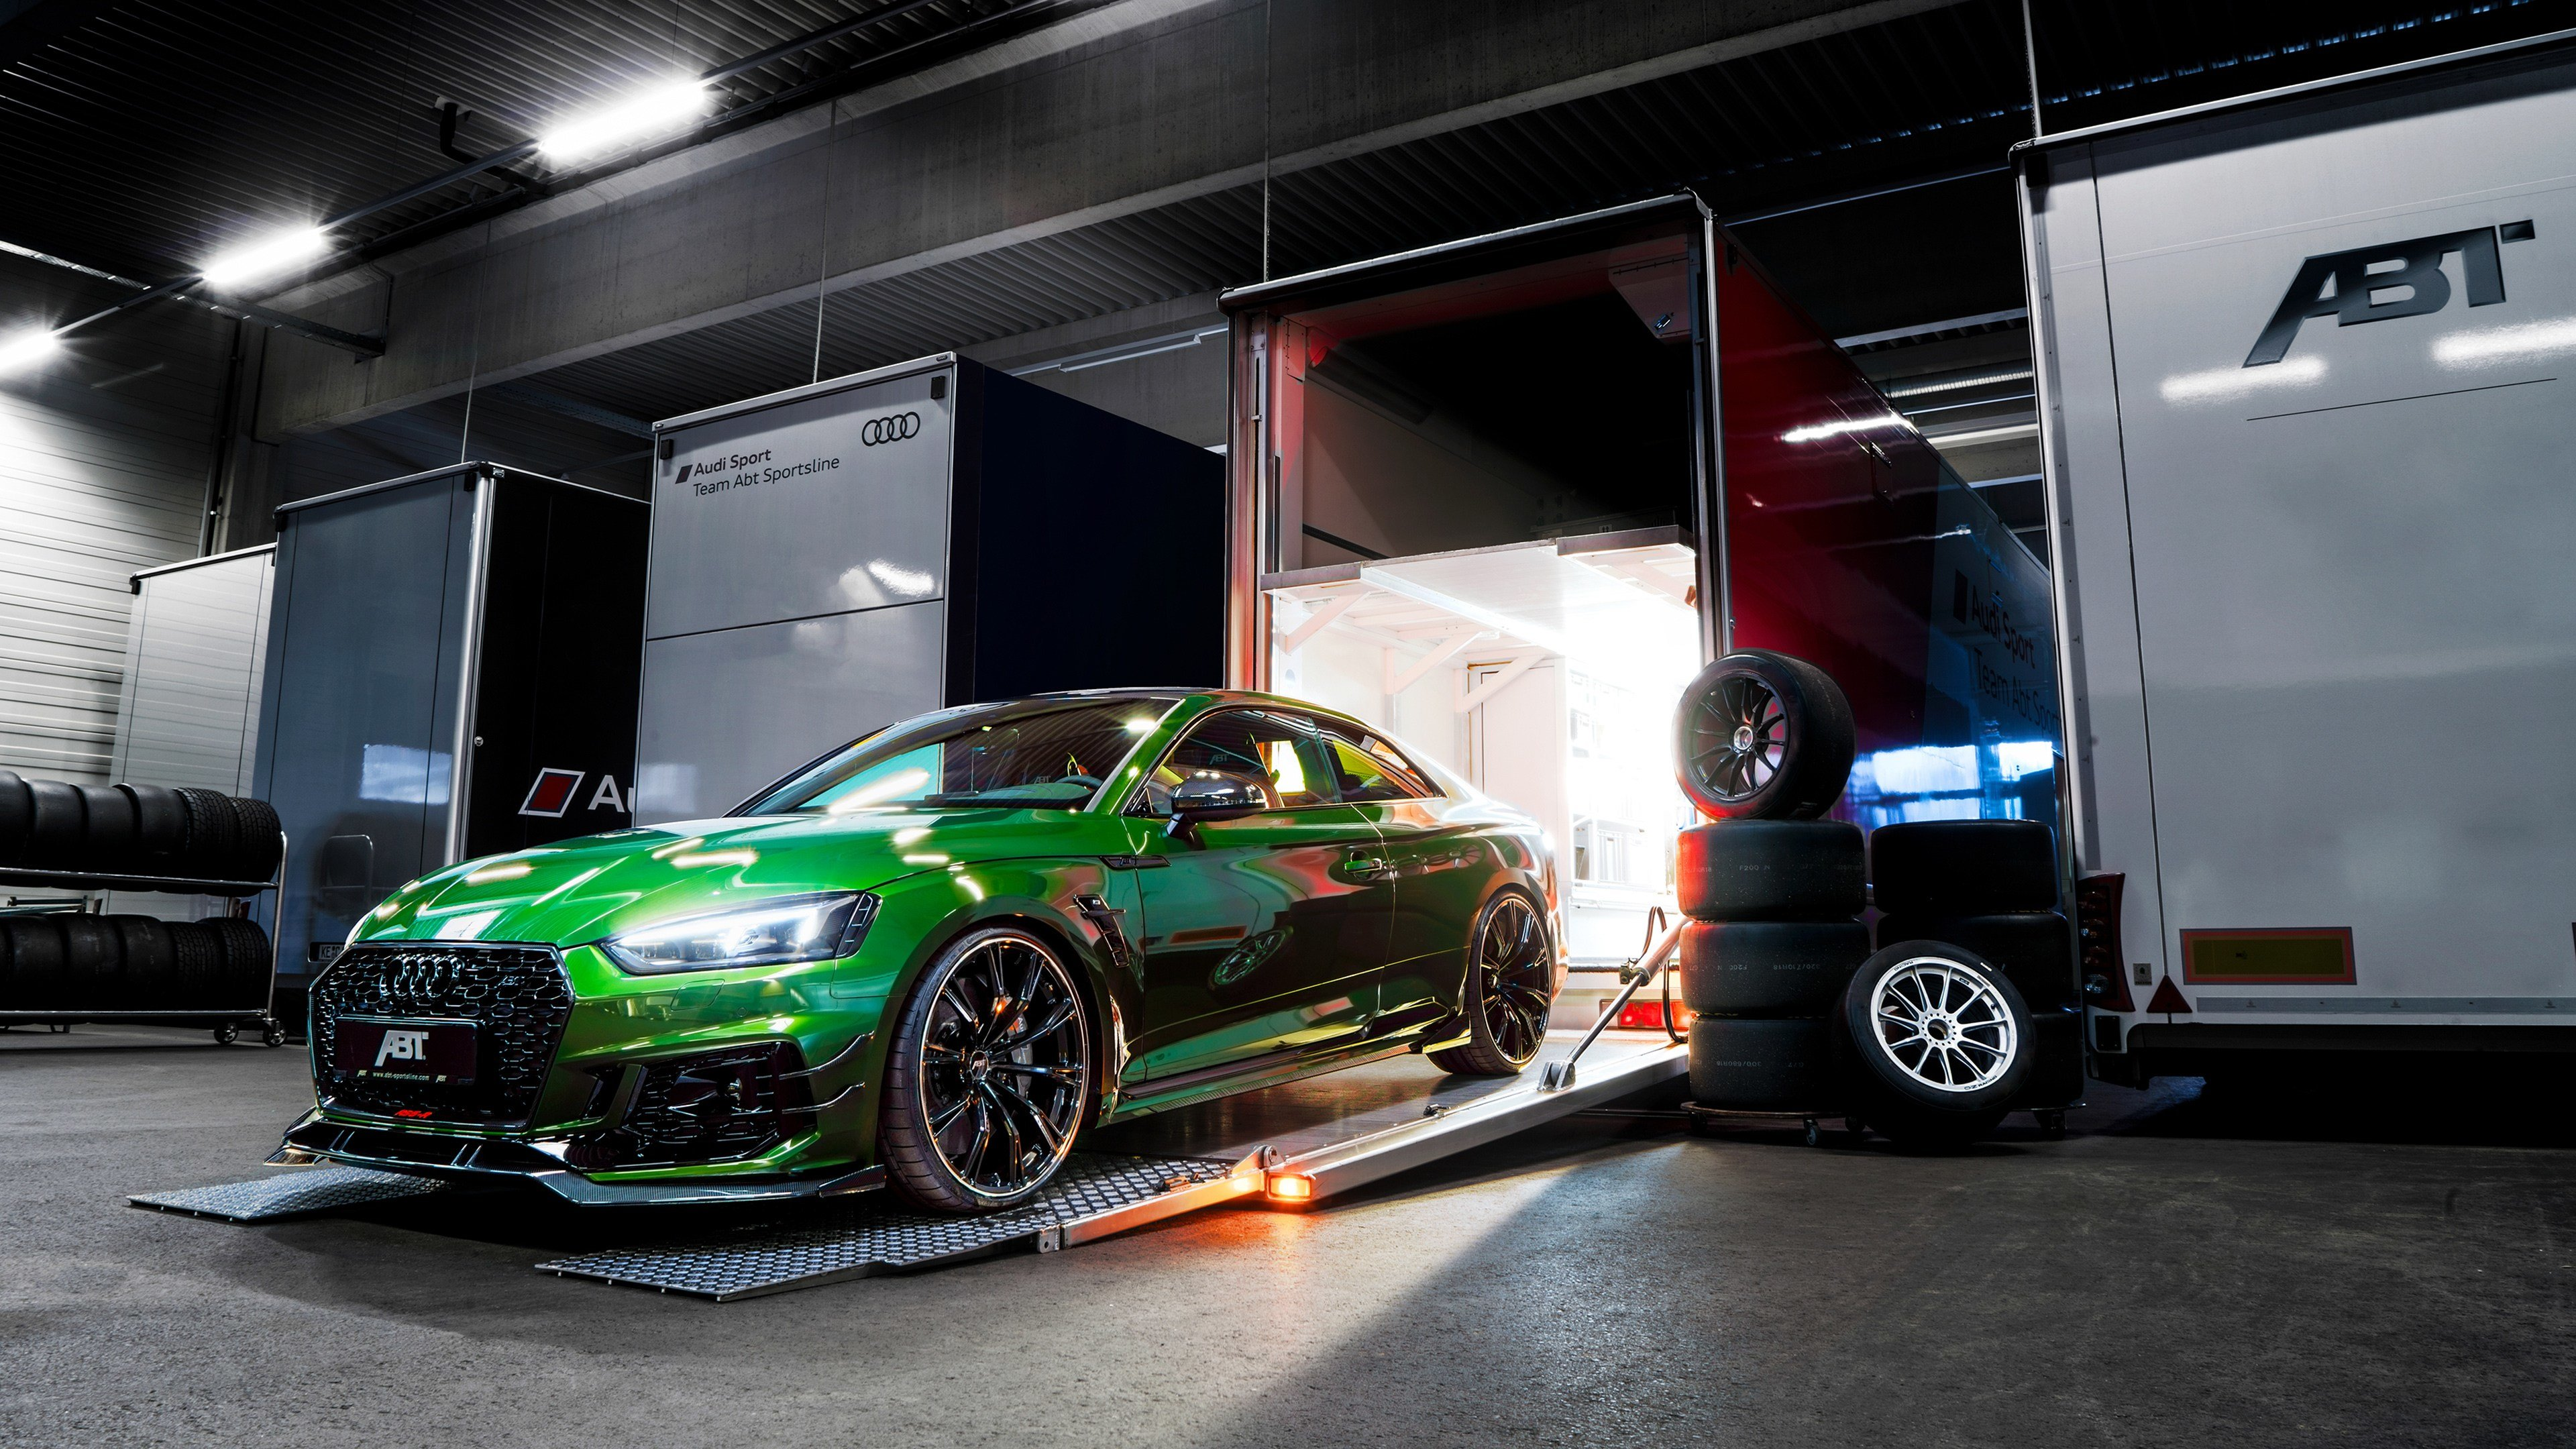 Latest 2018 Abt Audi Rs 5 R Coupe 4K Wallpaper Hd Car Free Download